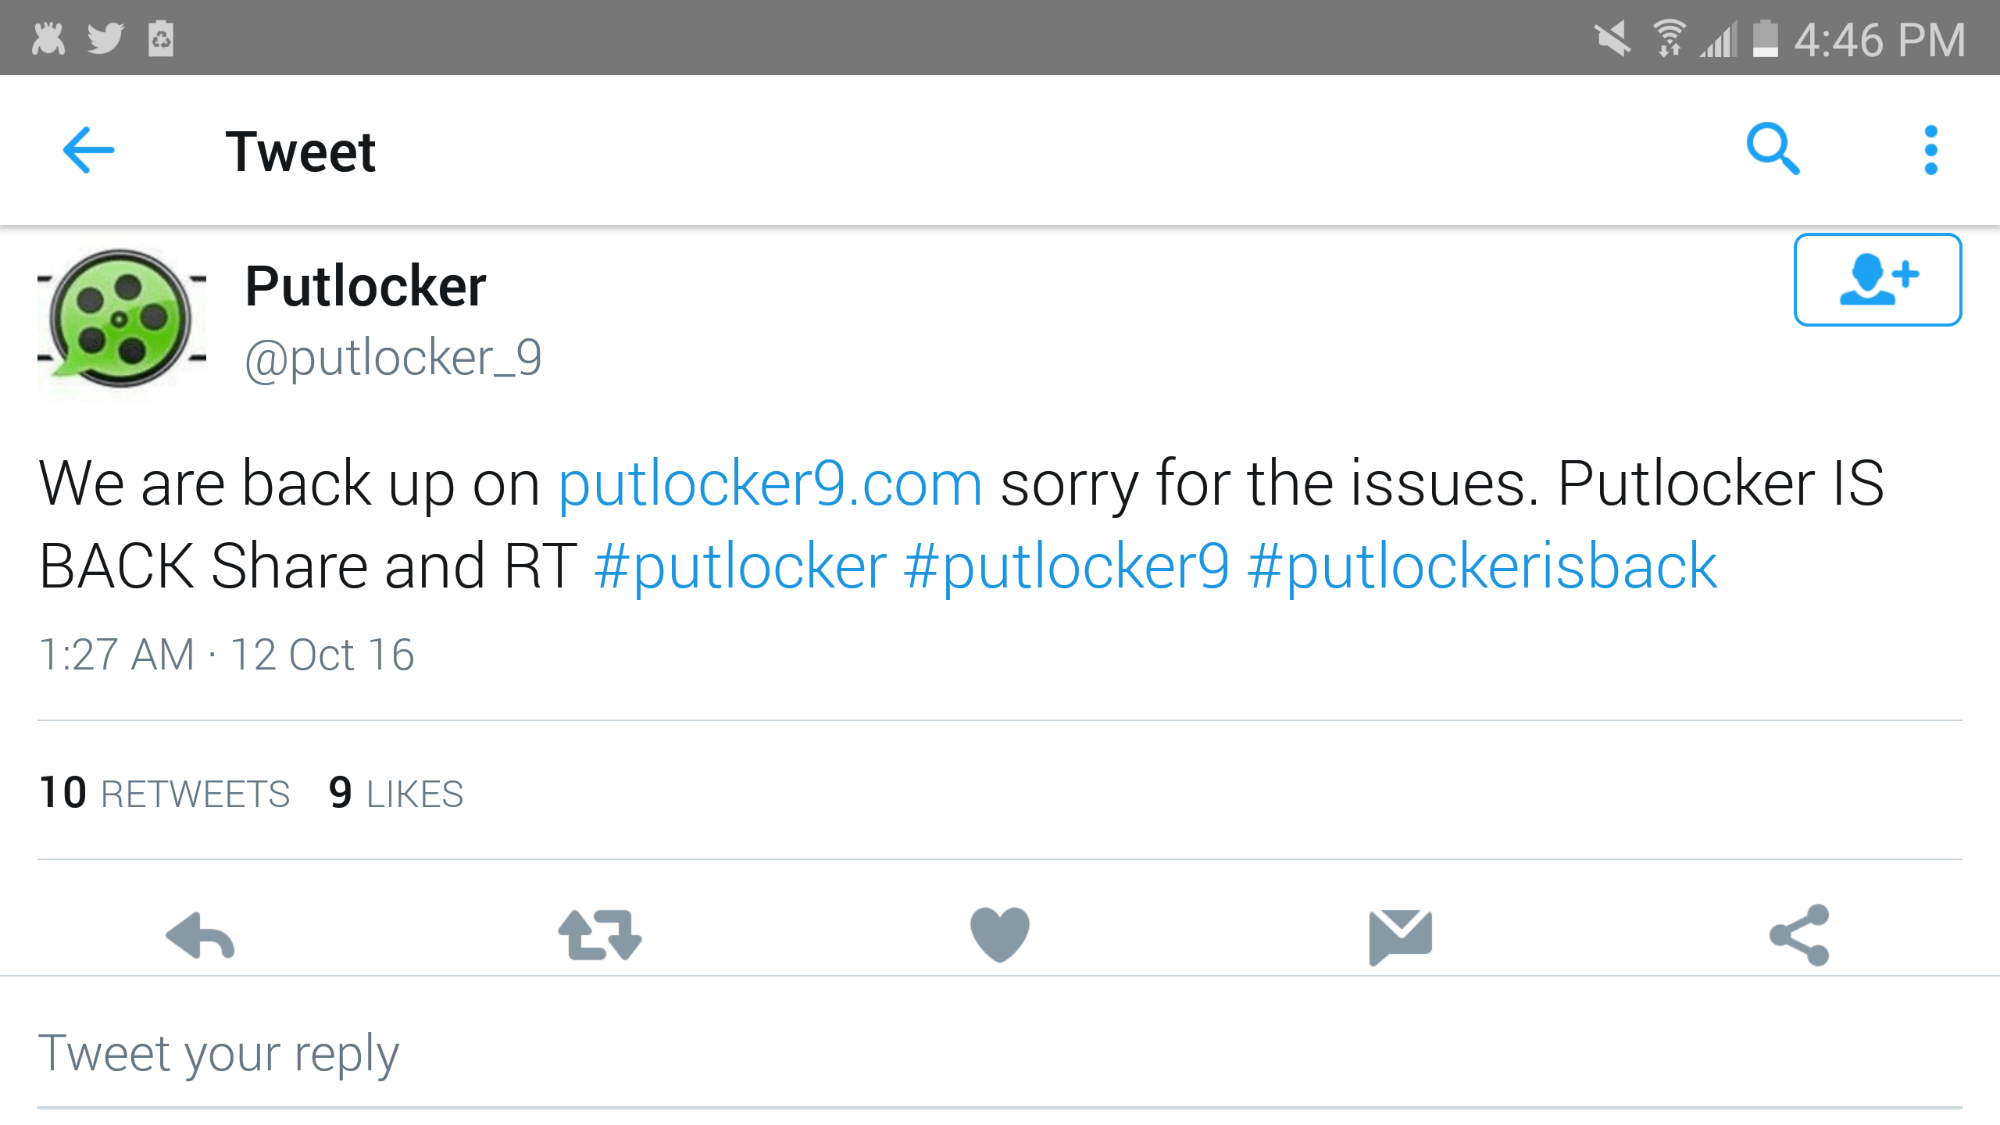 Putlocker.is Still Down After 8 Days! – EverydayElectronics